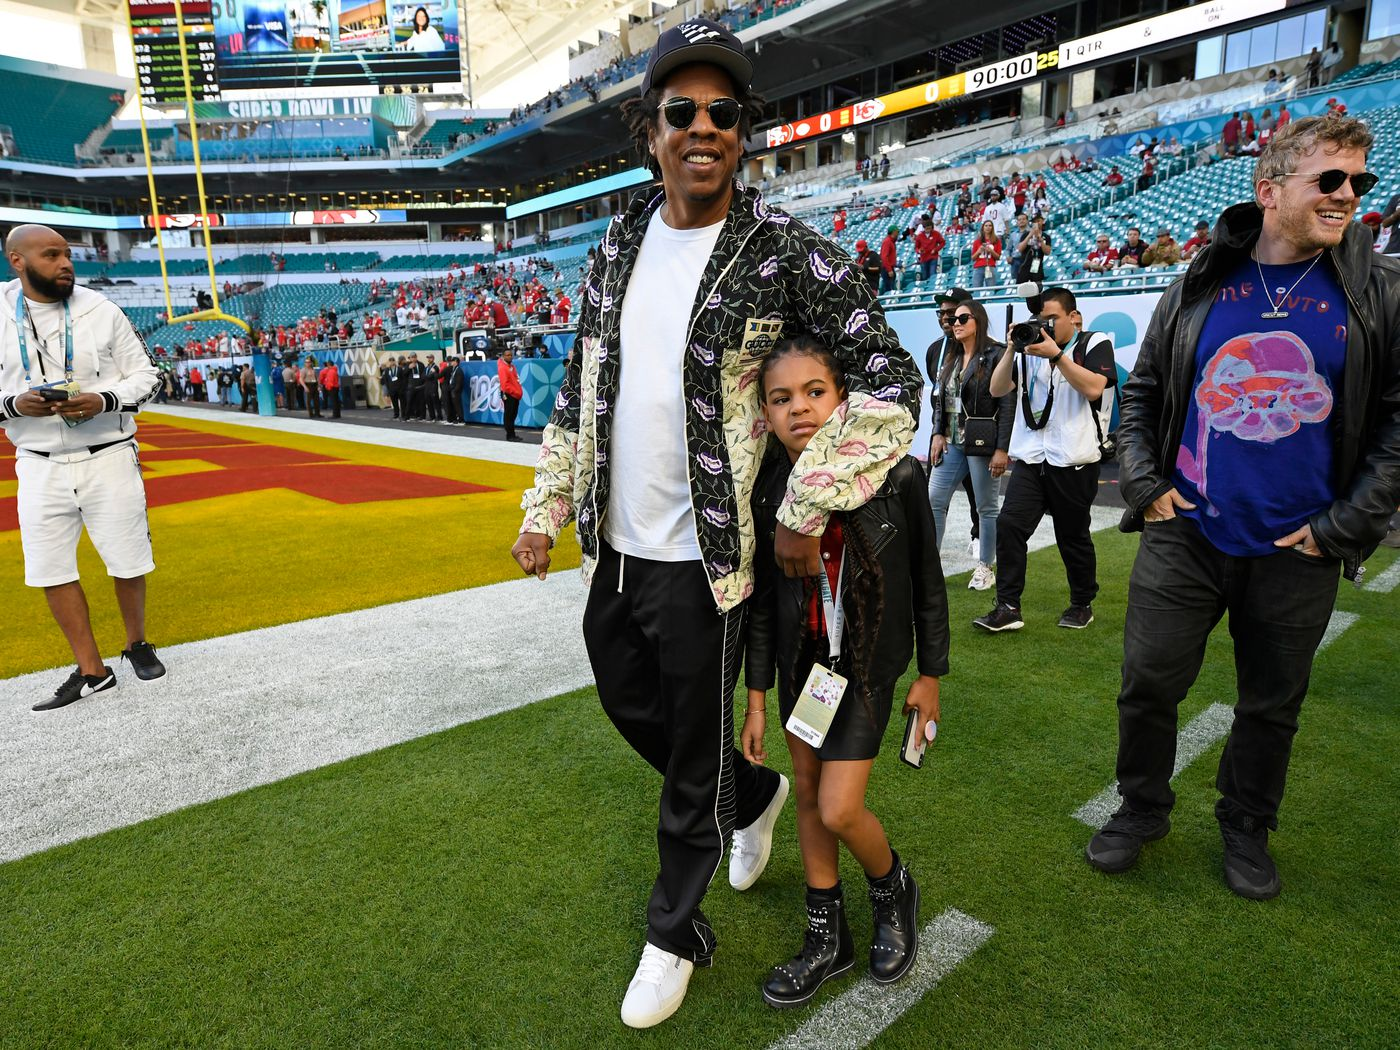 Super Bowl 2020 The Controversy Of Jay Z And Beyonce Sitting During The National Anthem Vox